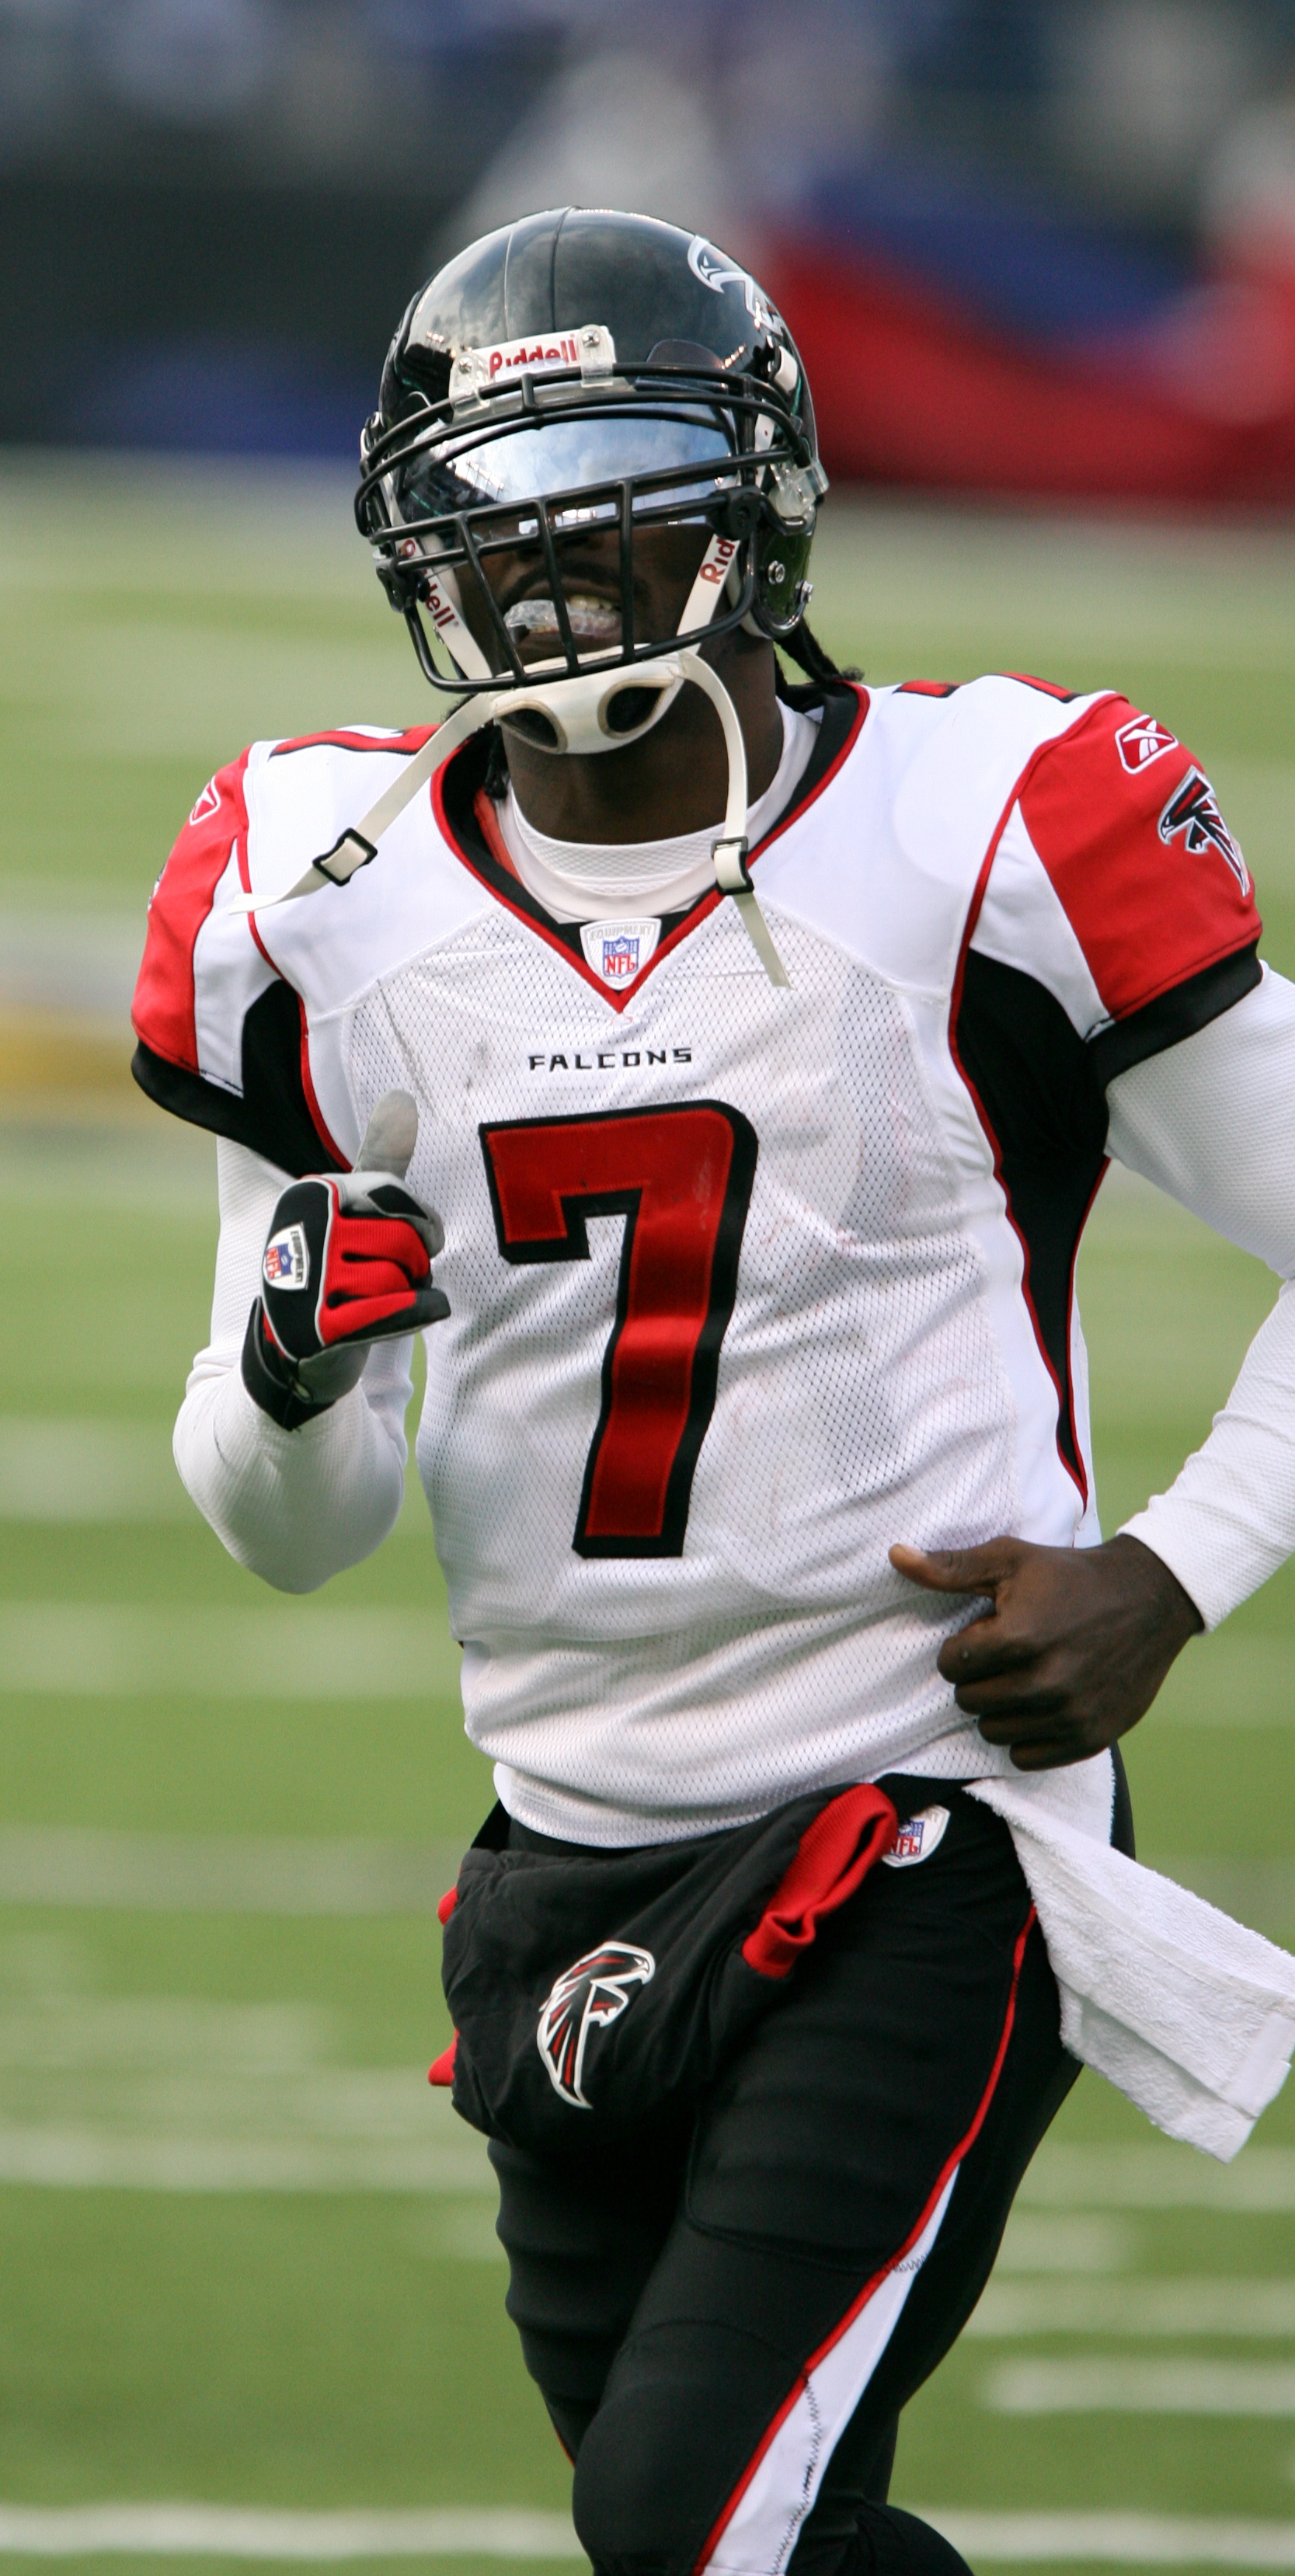 michael vick Former atlanta falcons quarterback michael vick was named the offensive coordinator of the alliance of american football's new atlanta team on wednesday.